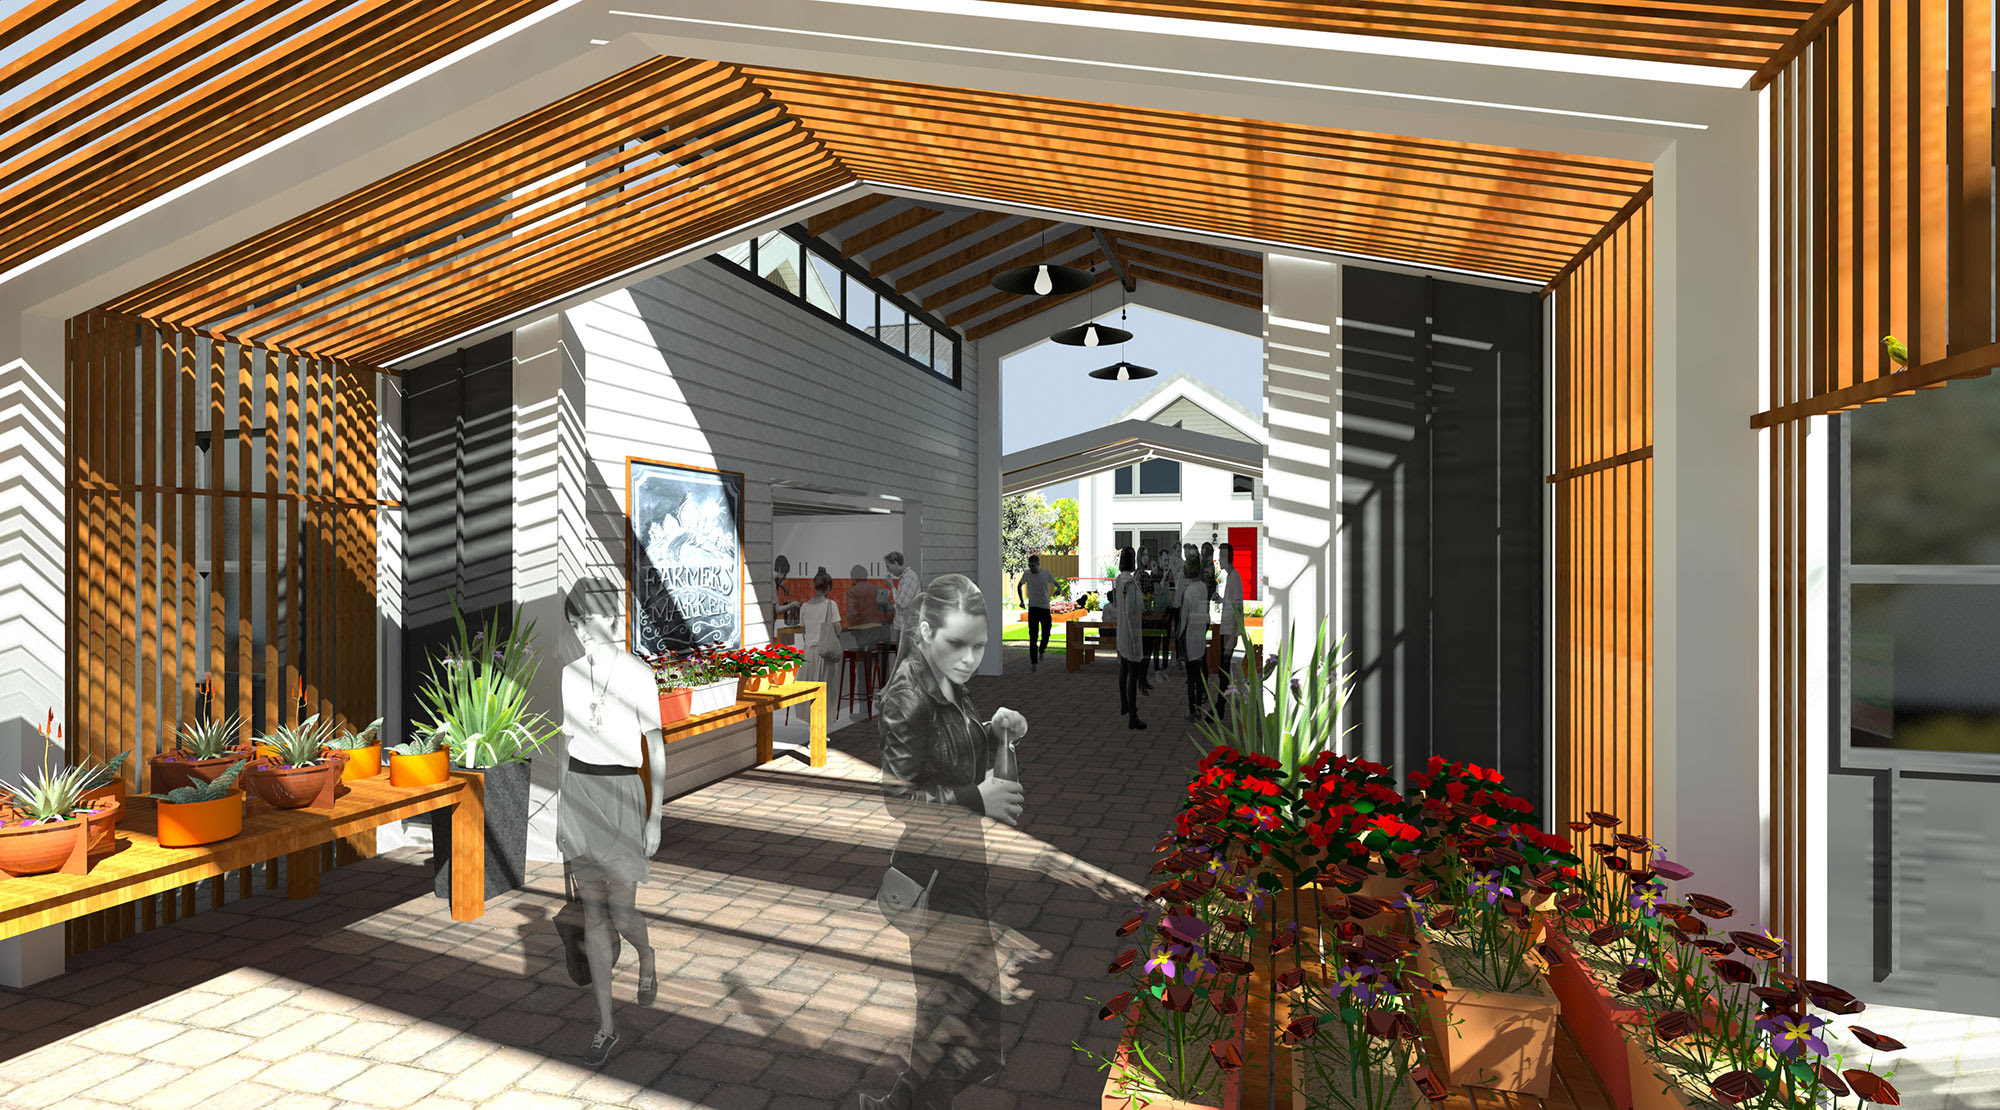 Rendering of breezeway of Commons Building at The Patch; people browsing aisles of produce